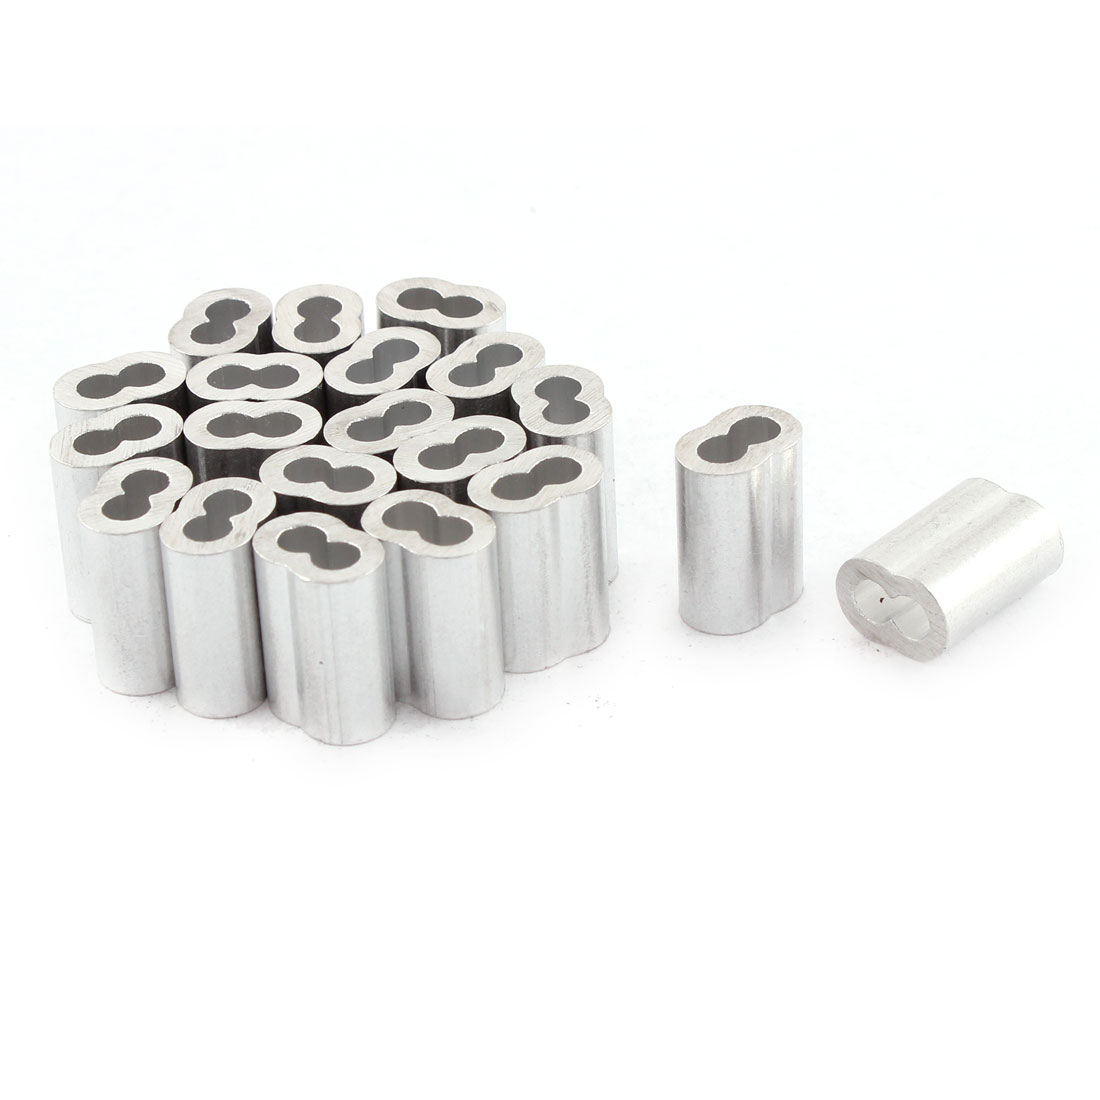 "20pcs Silver Tone Aluminum Sleeve for 1/8"" Steel Wire Rope Swage Clip"